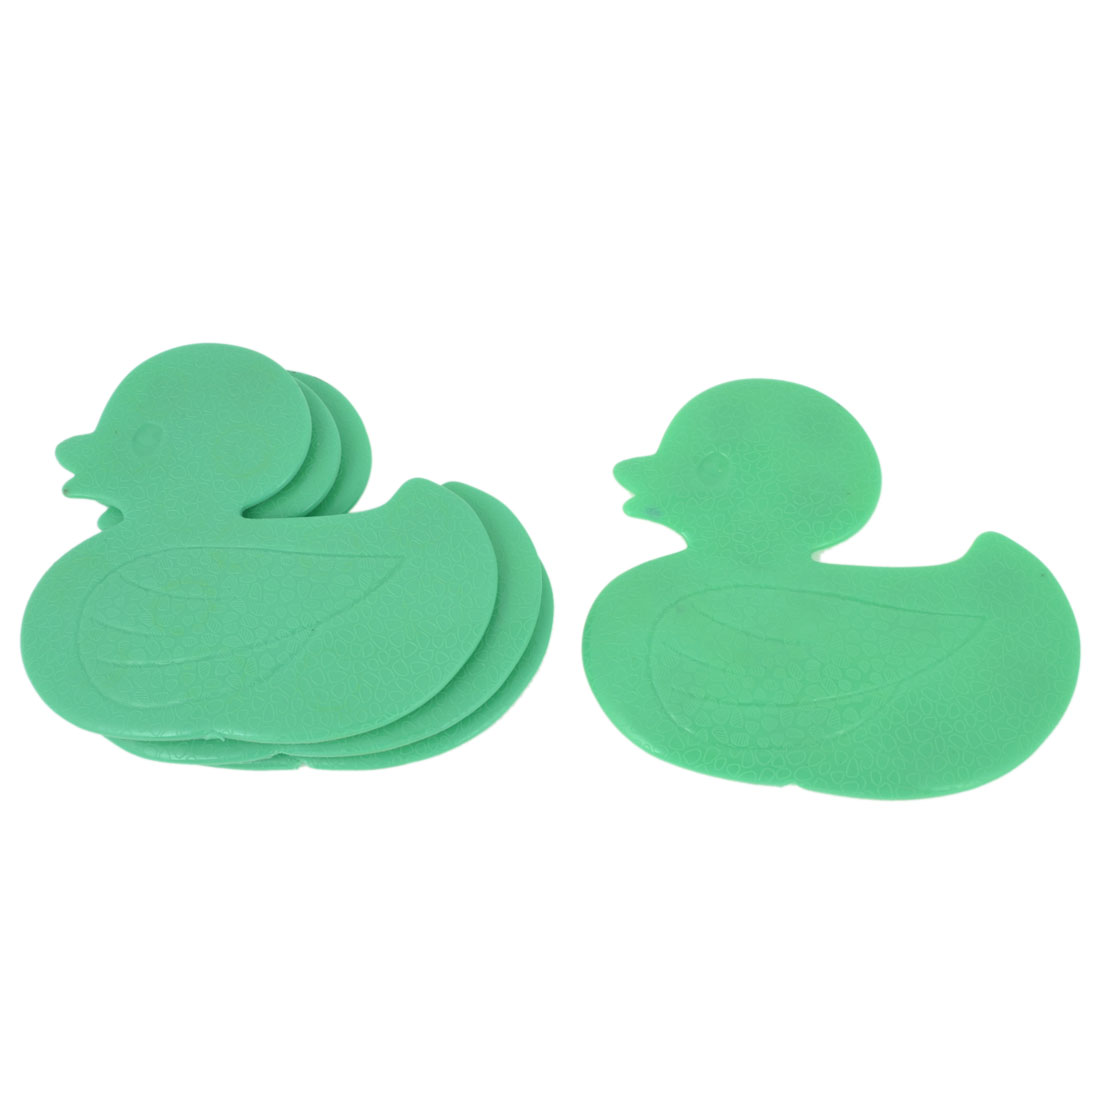 4pcs Green Duck Style Nonslip Mat w Sucker for Bathroom